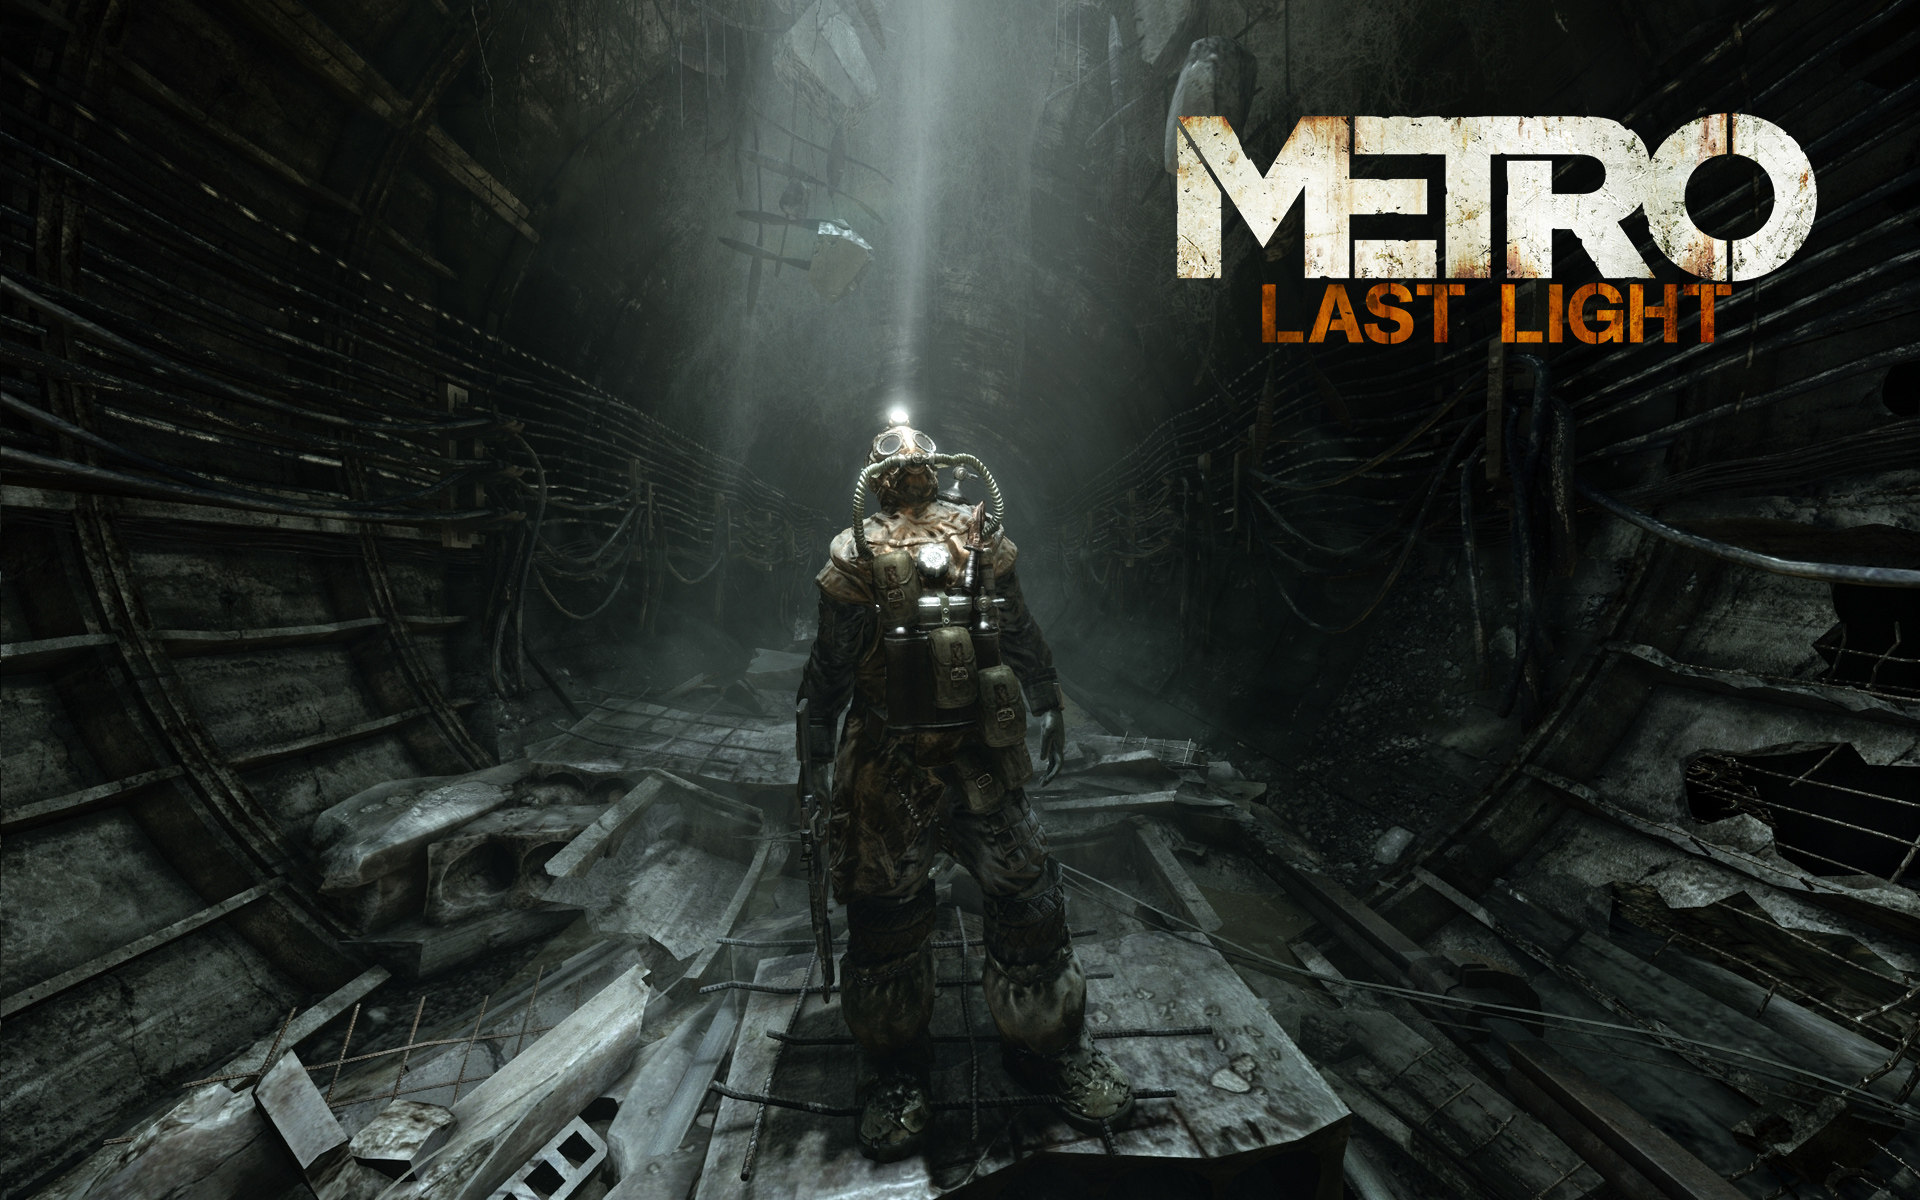 metro_last_light-wide+1_20130301225753.jpg